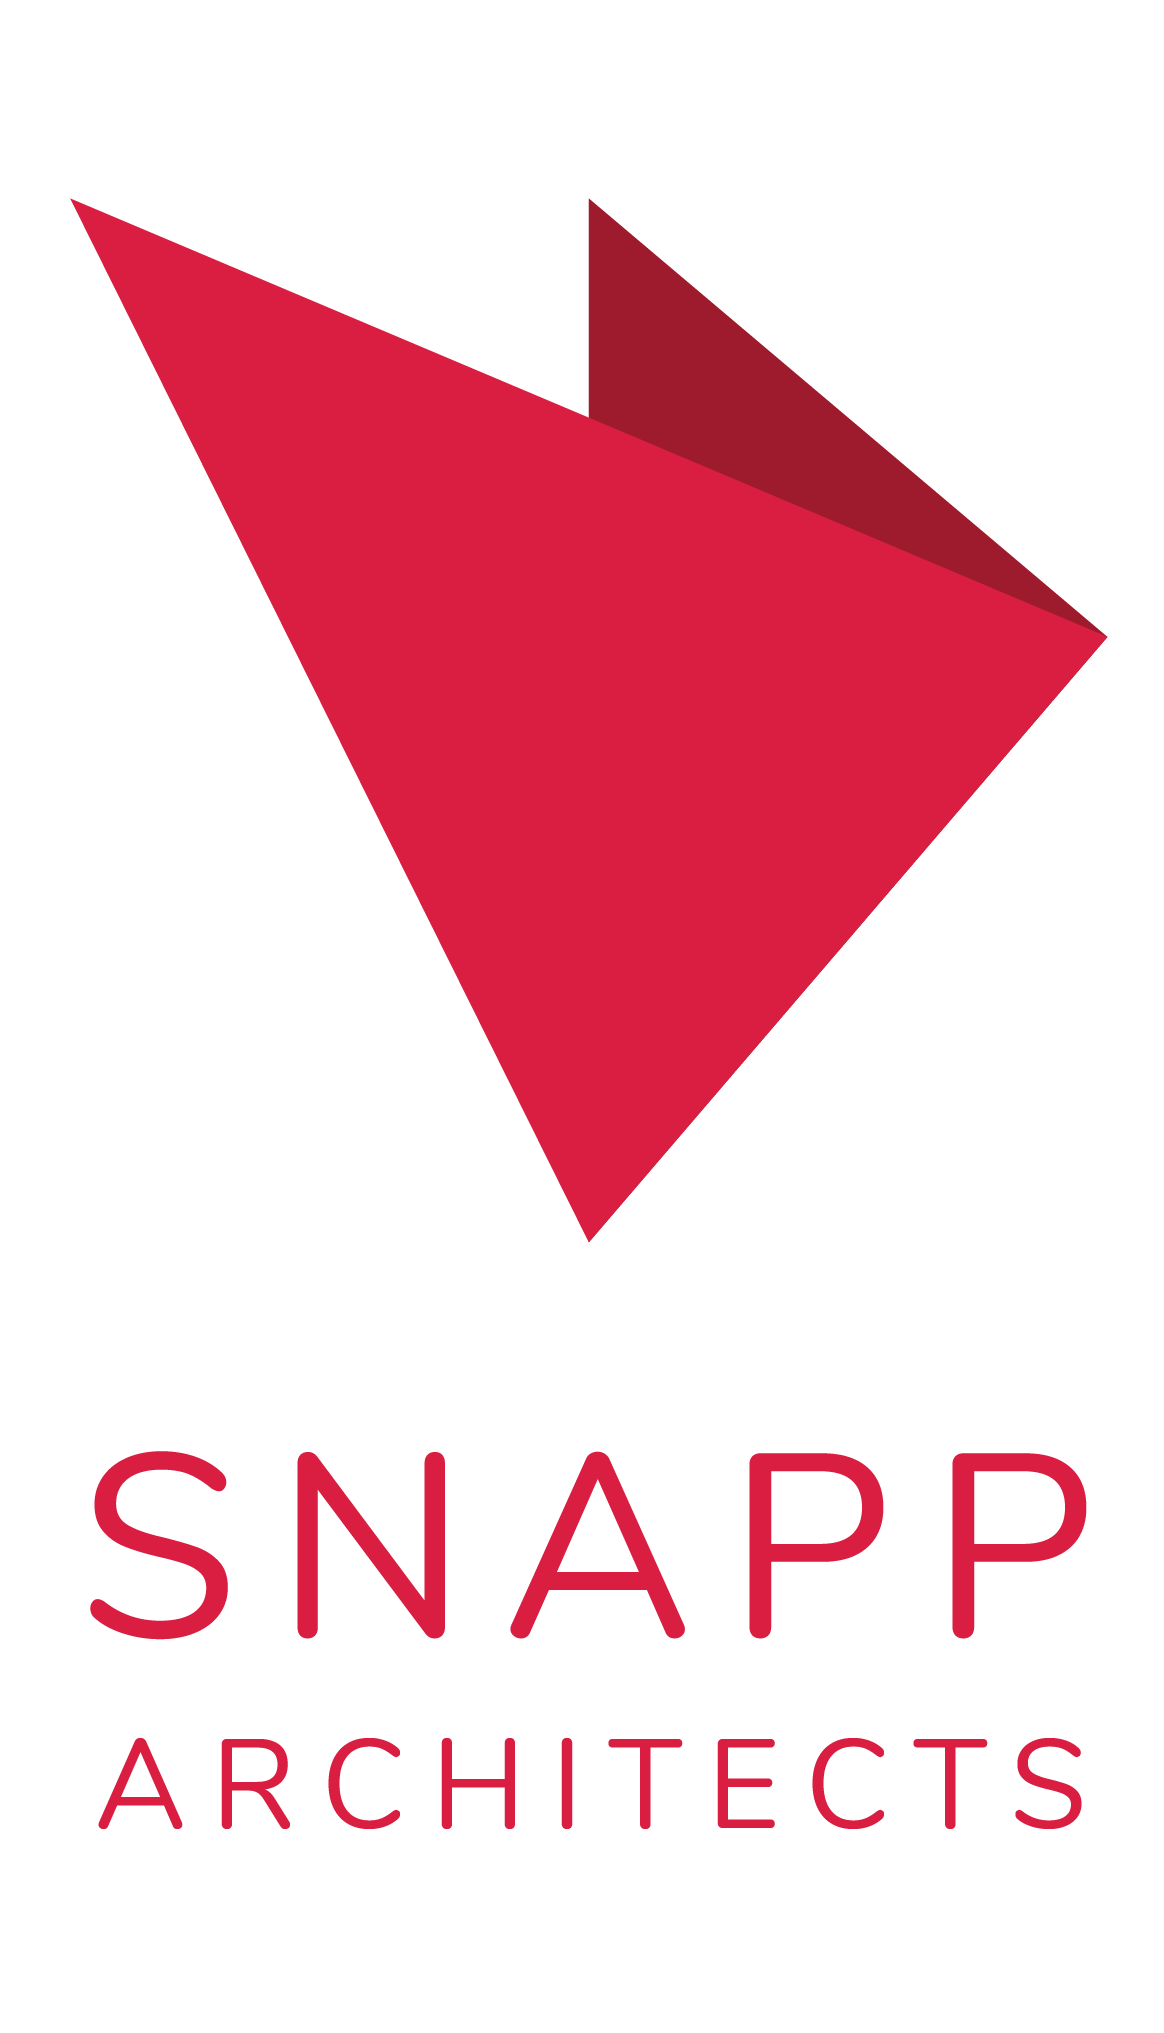 SNAPP ARCHITECTS